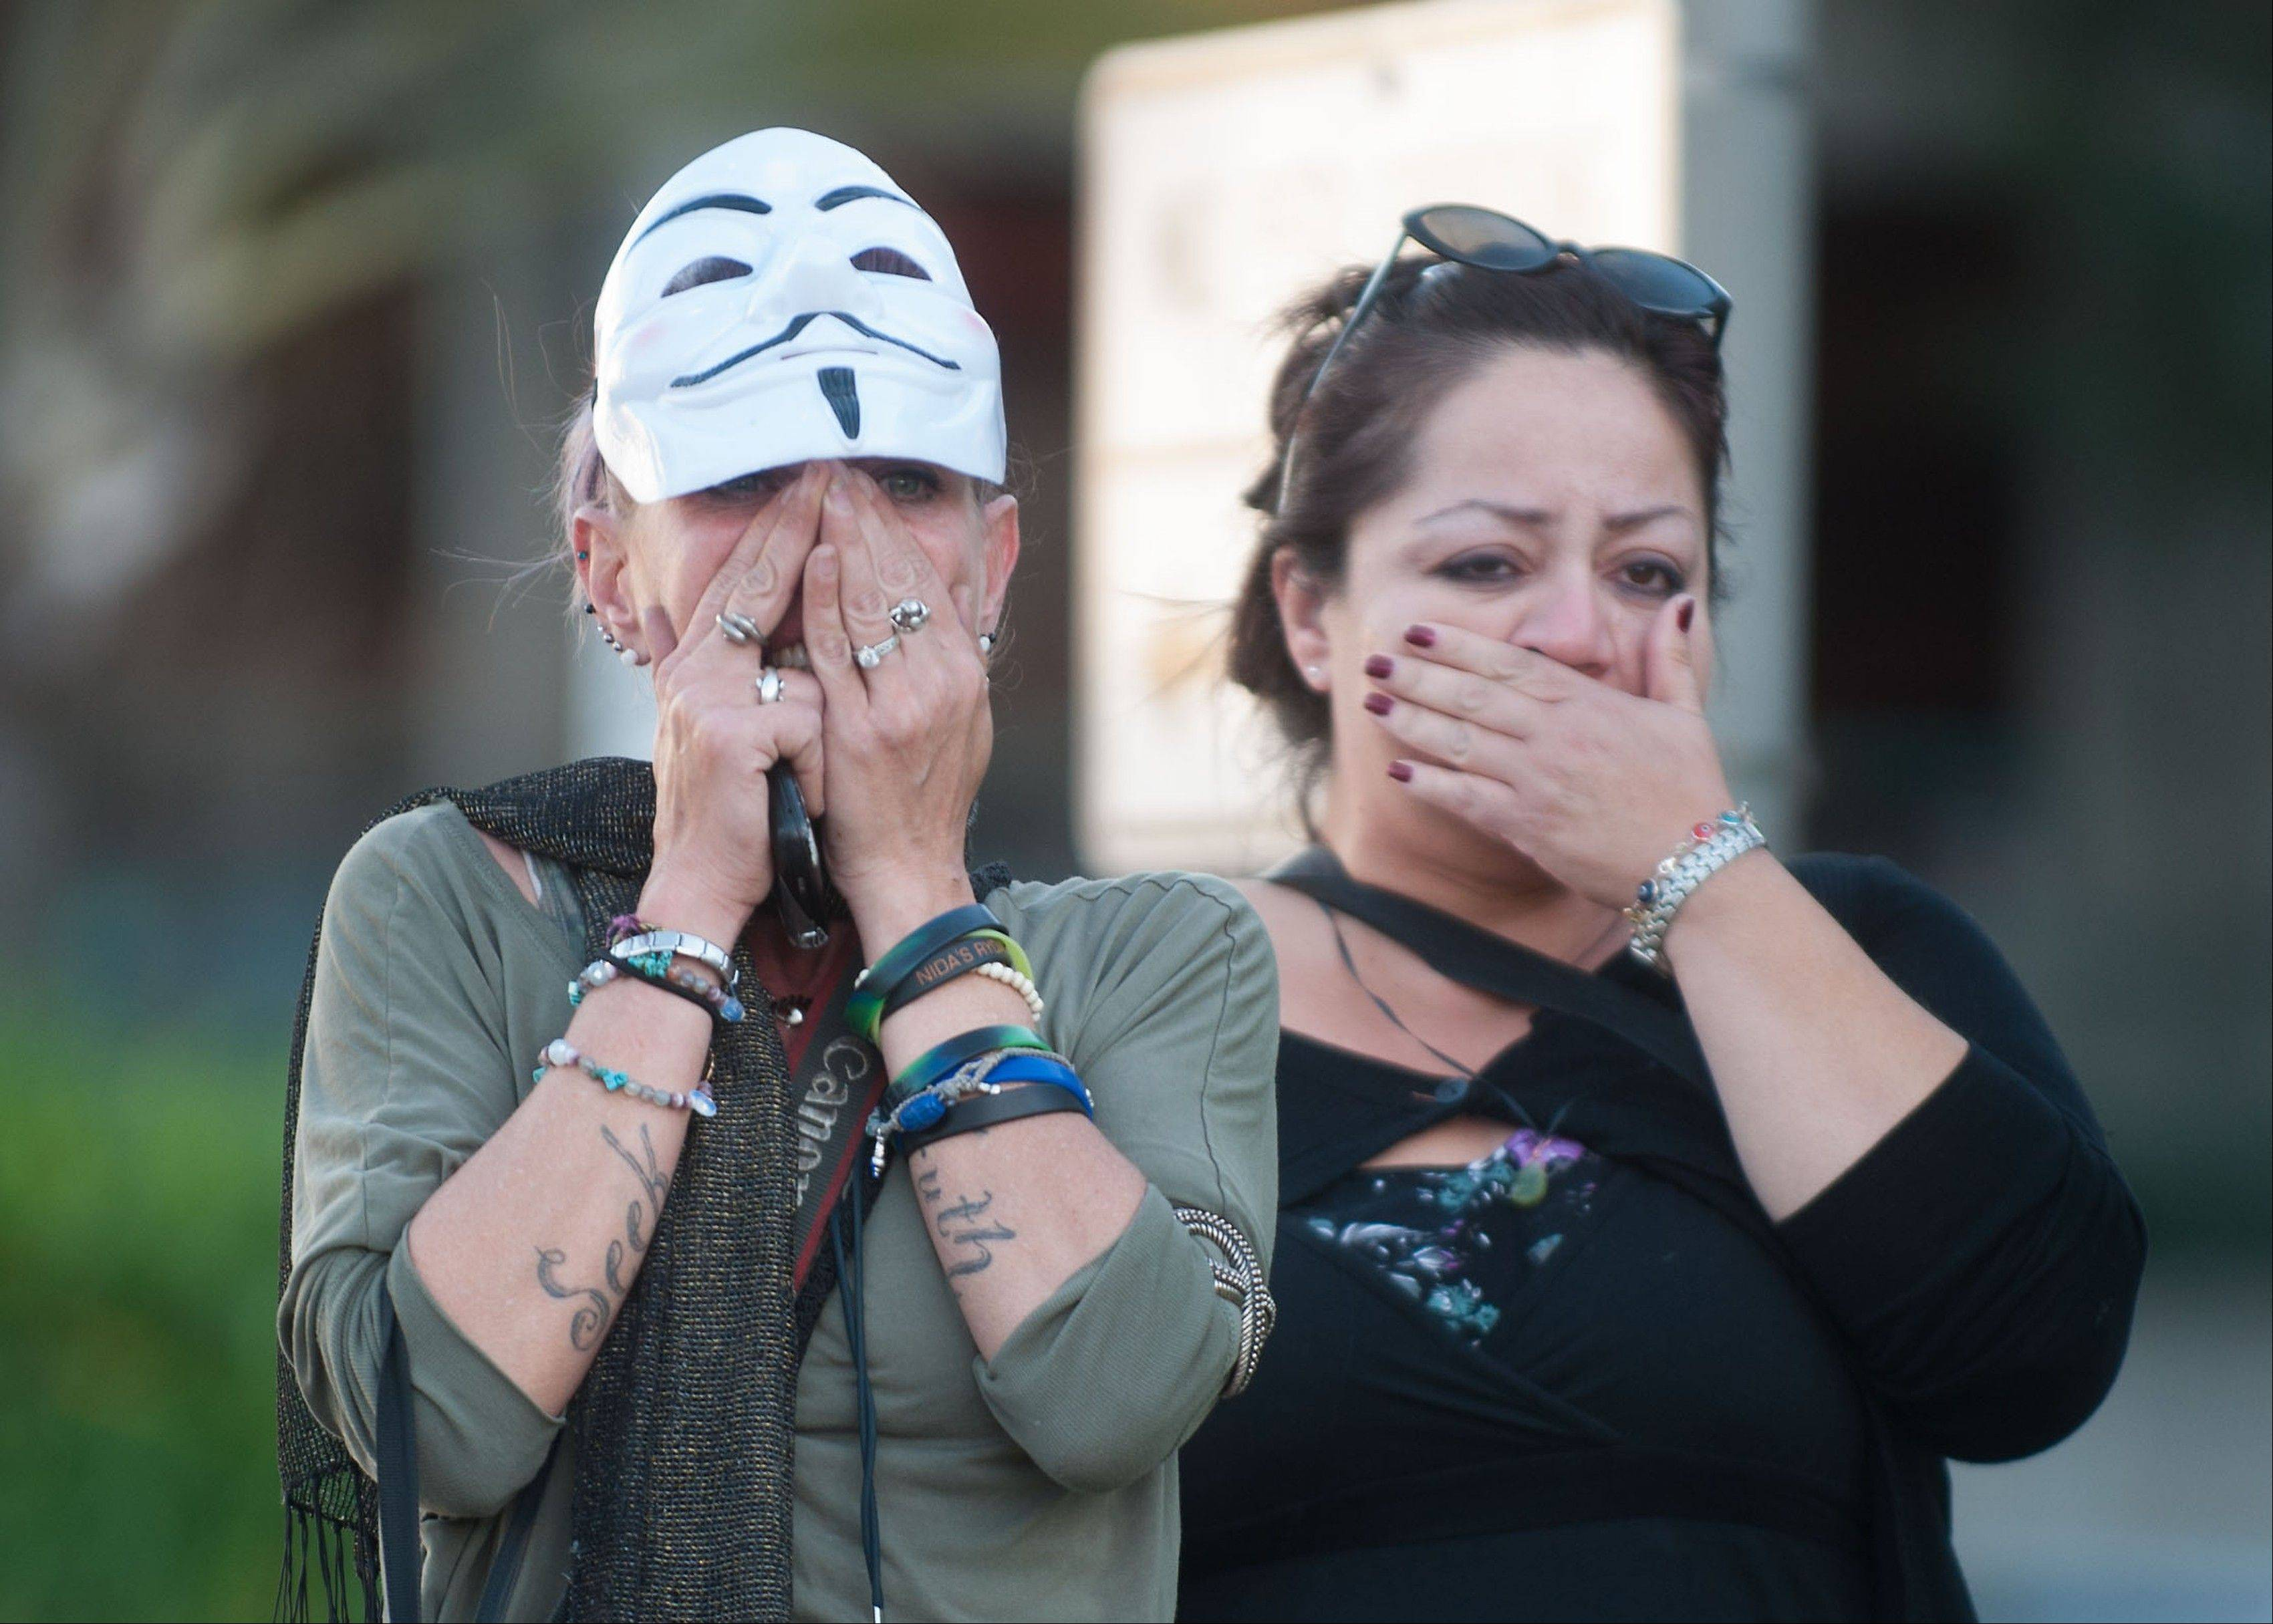 Shocked supporters of Kelly Thomas react Monday Jan. 13, 2014, in Santa Ana, Calif., after the �not guilty� verdicts in his beating death outside the Santa Ana Courthouse. The Orange County panel found Manuel Ramos and Jay Cicinelli not guilty of all charges � including manslaughter � in the 2011 death of Kelly Thomas. A surveillance video showed police pummeling and stun-gunning him.